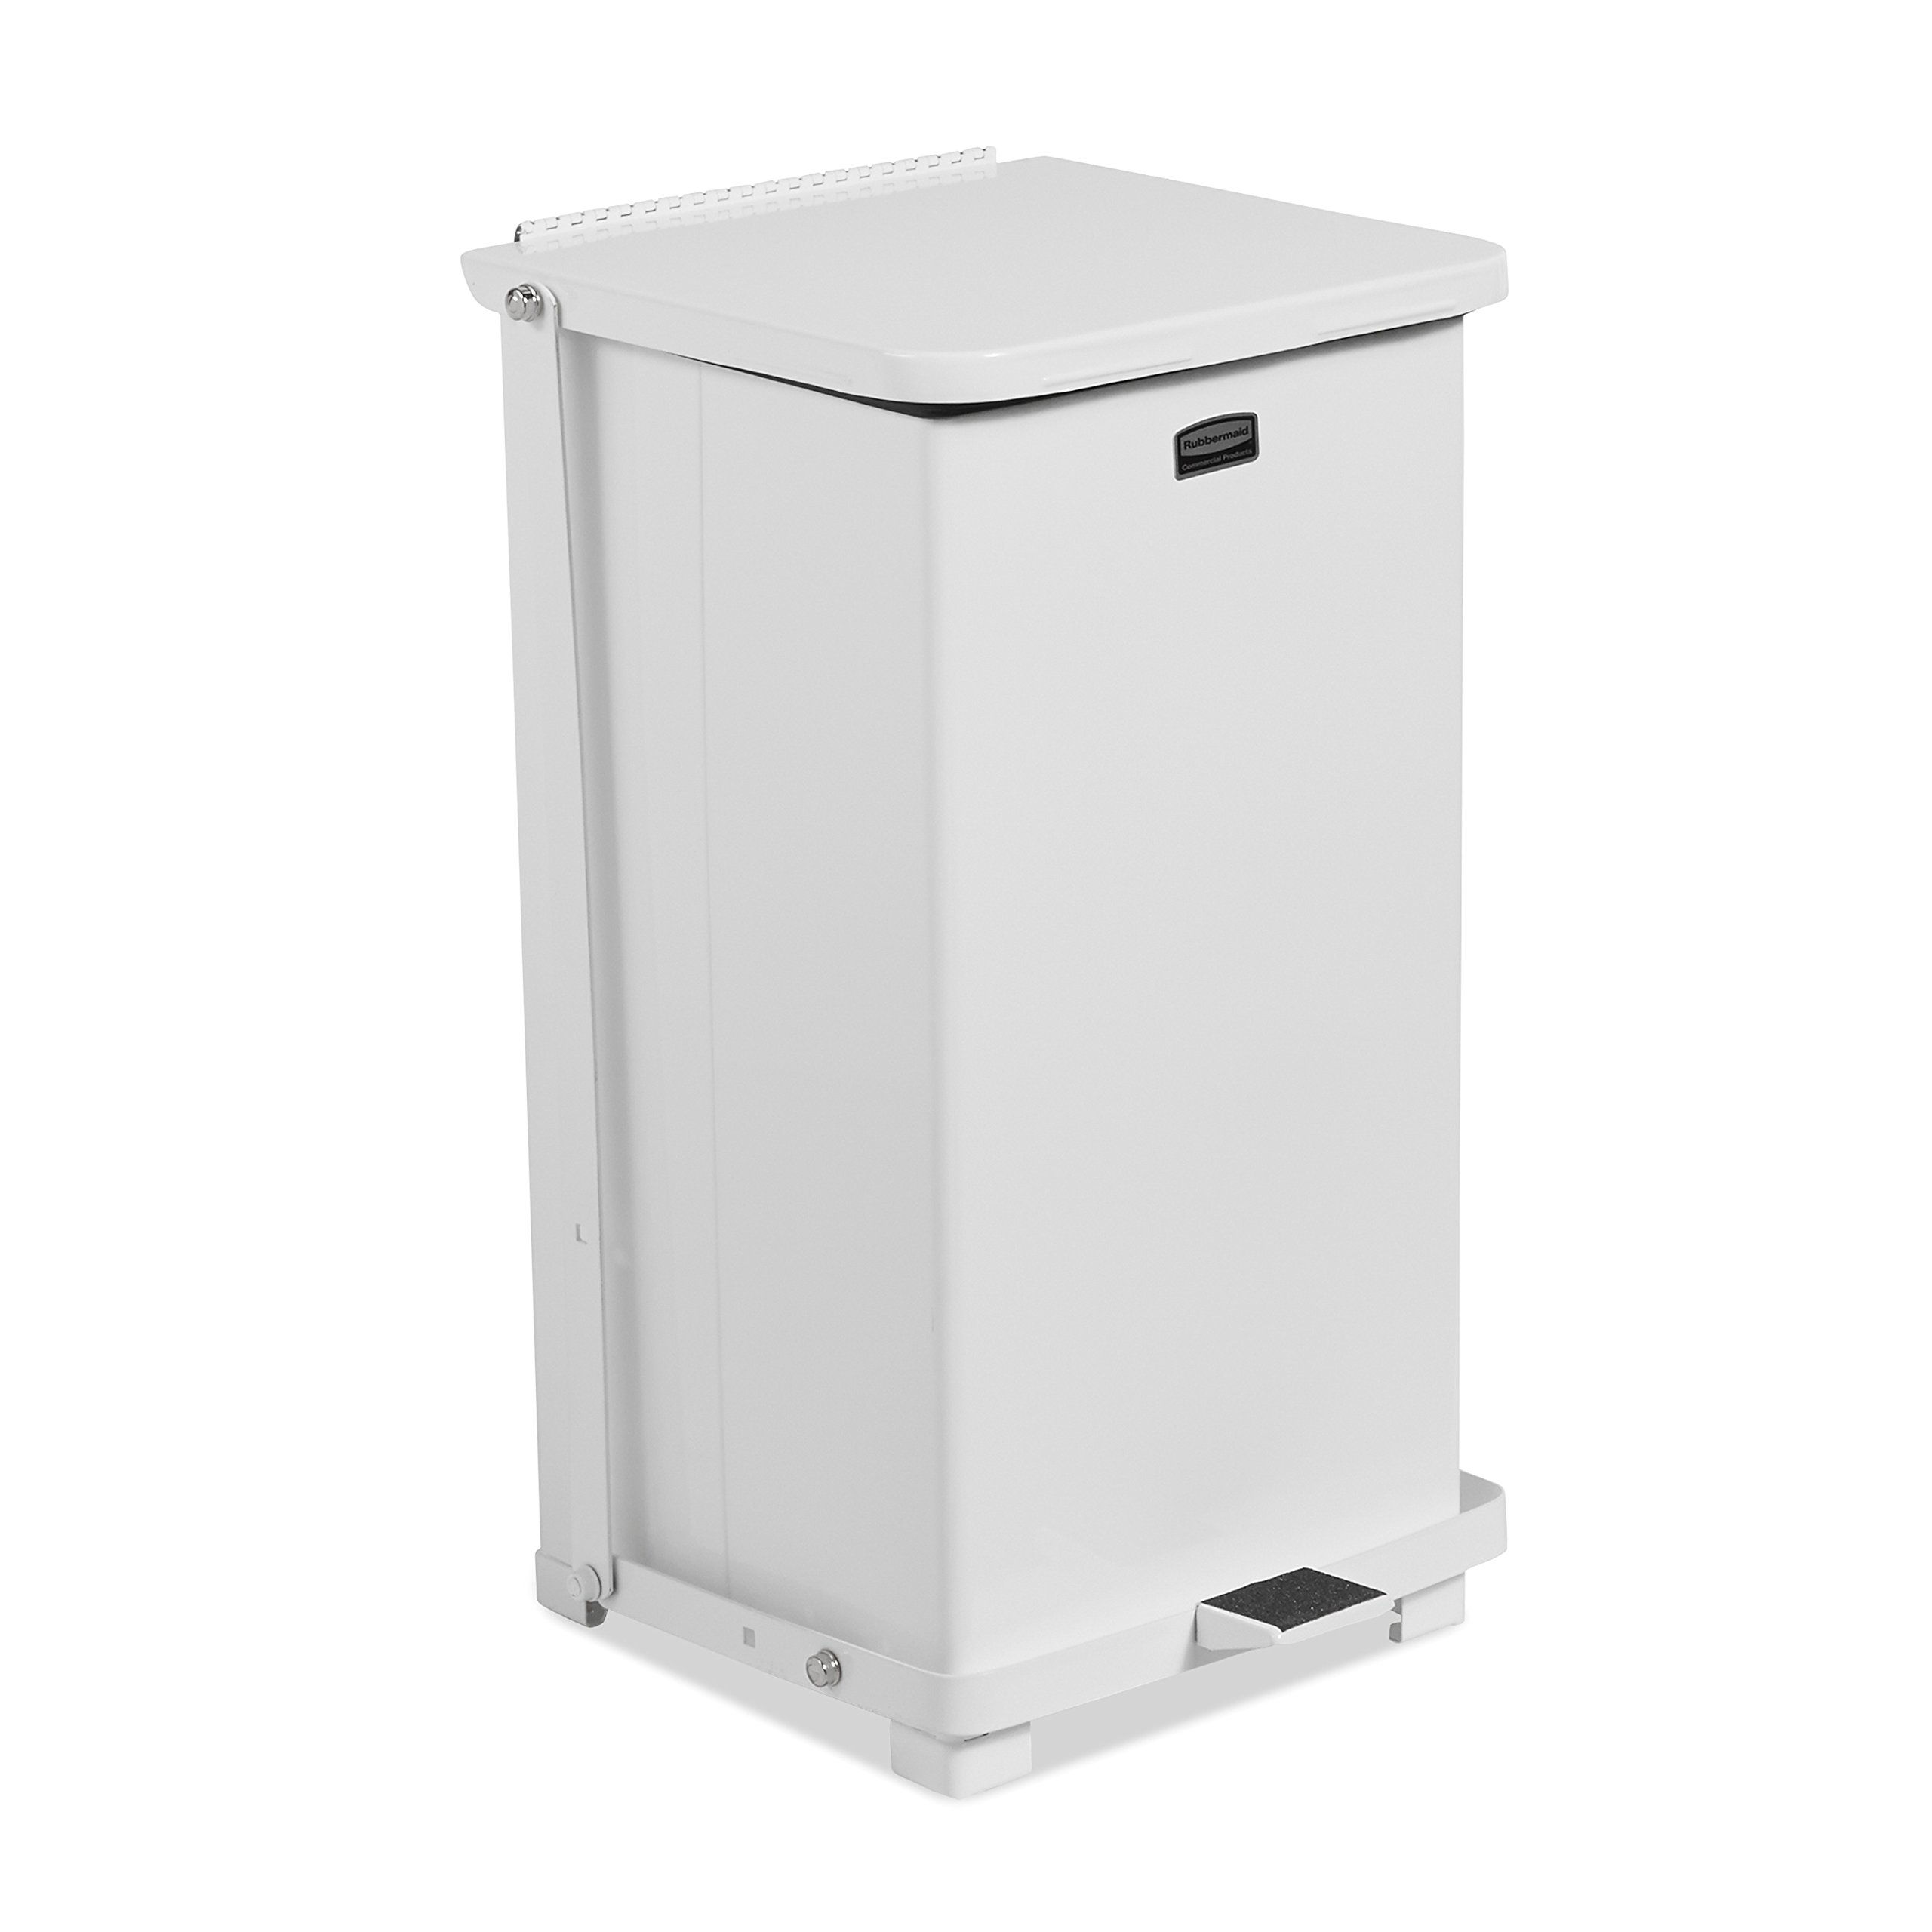 Rubbermaid Commercial FGQST12EPLWH The Silent Defenders Steel Step Trash Can, Square with Plastic Liner, 12-gallon, White